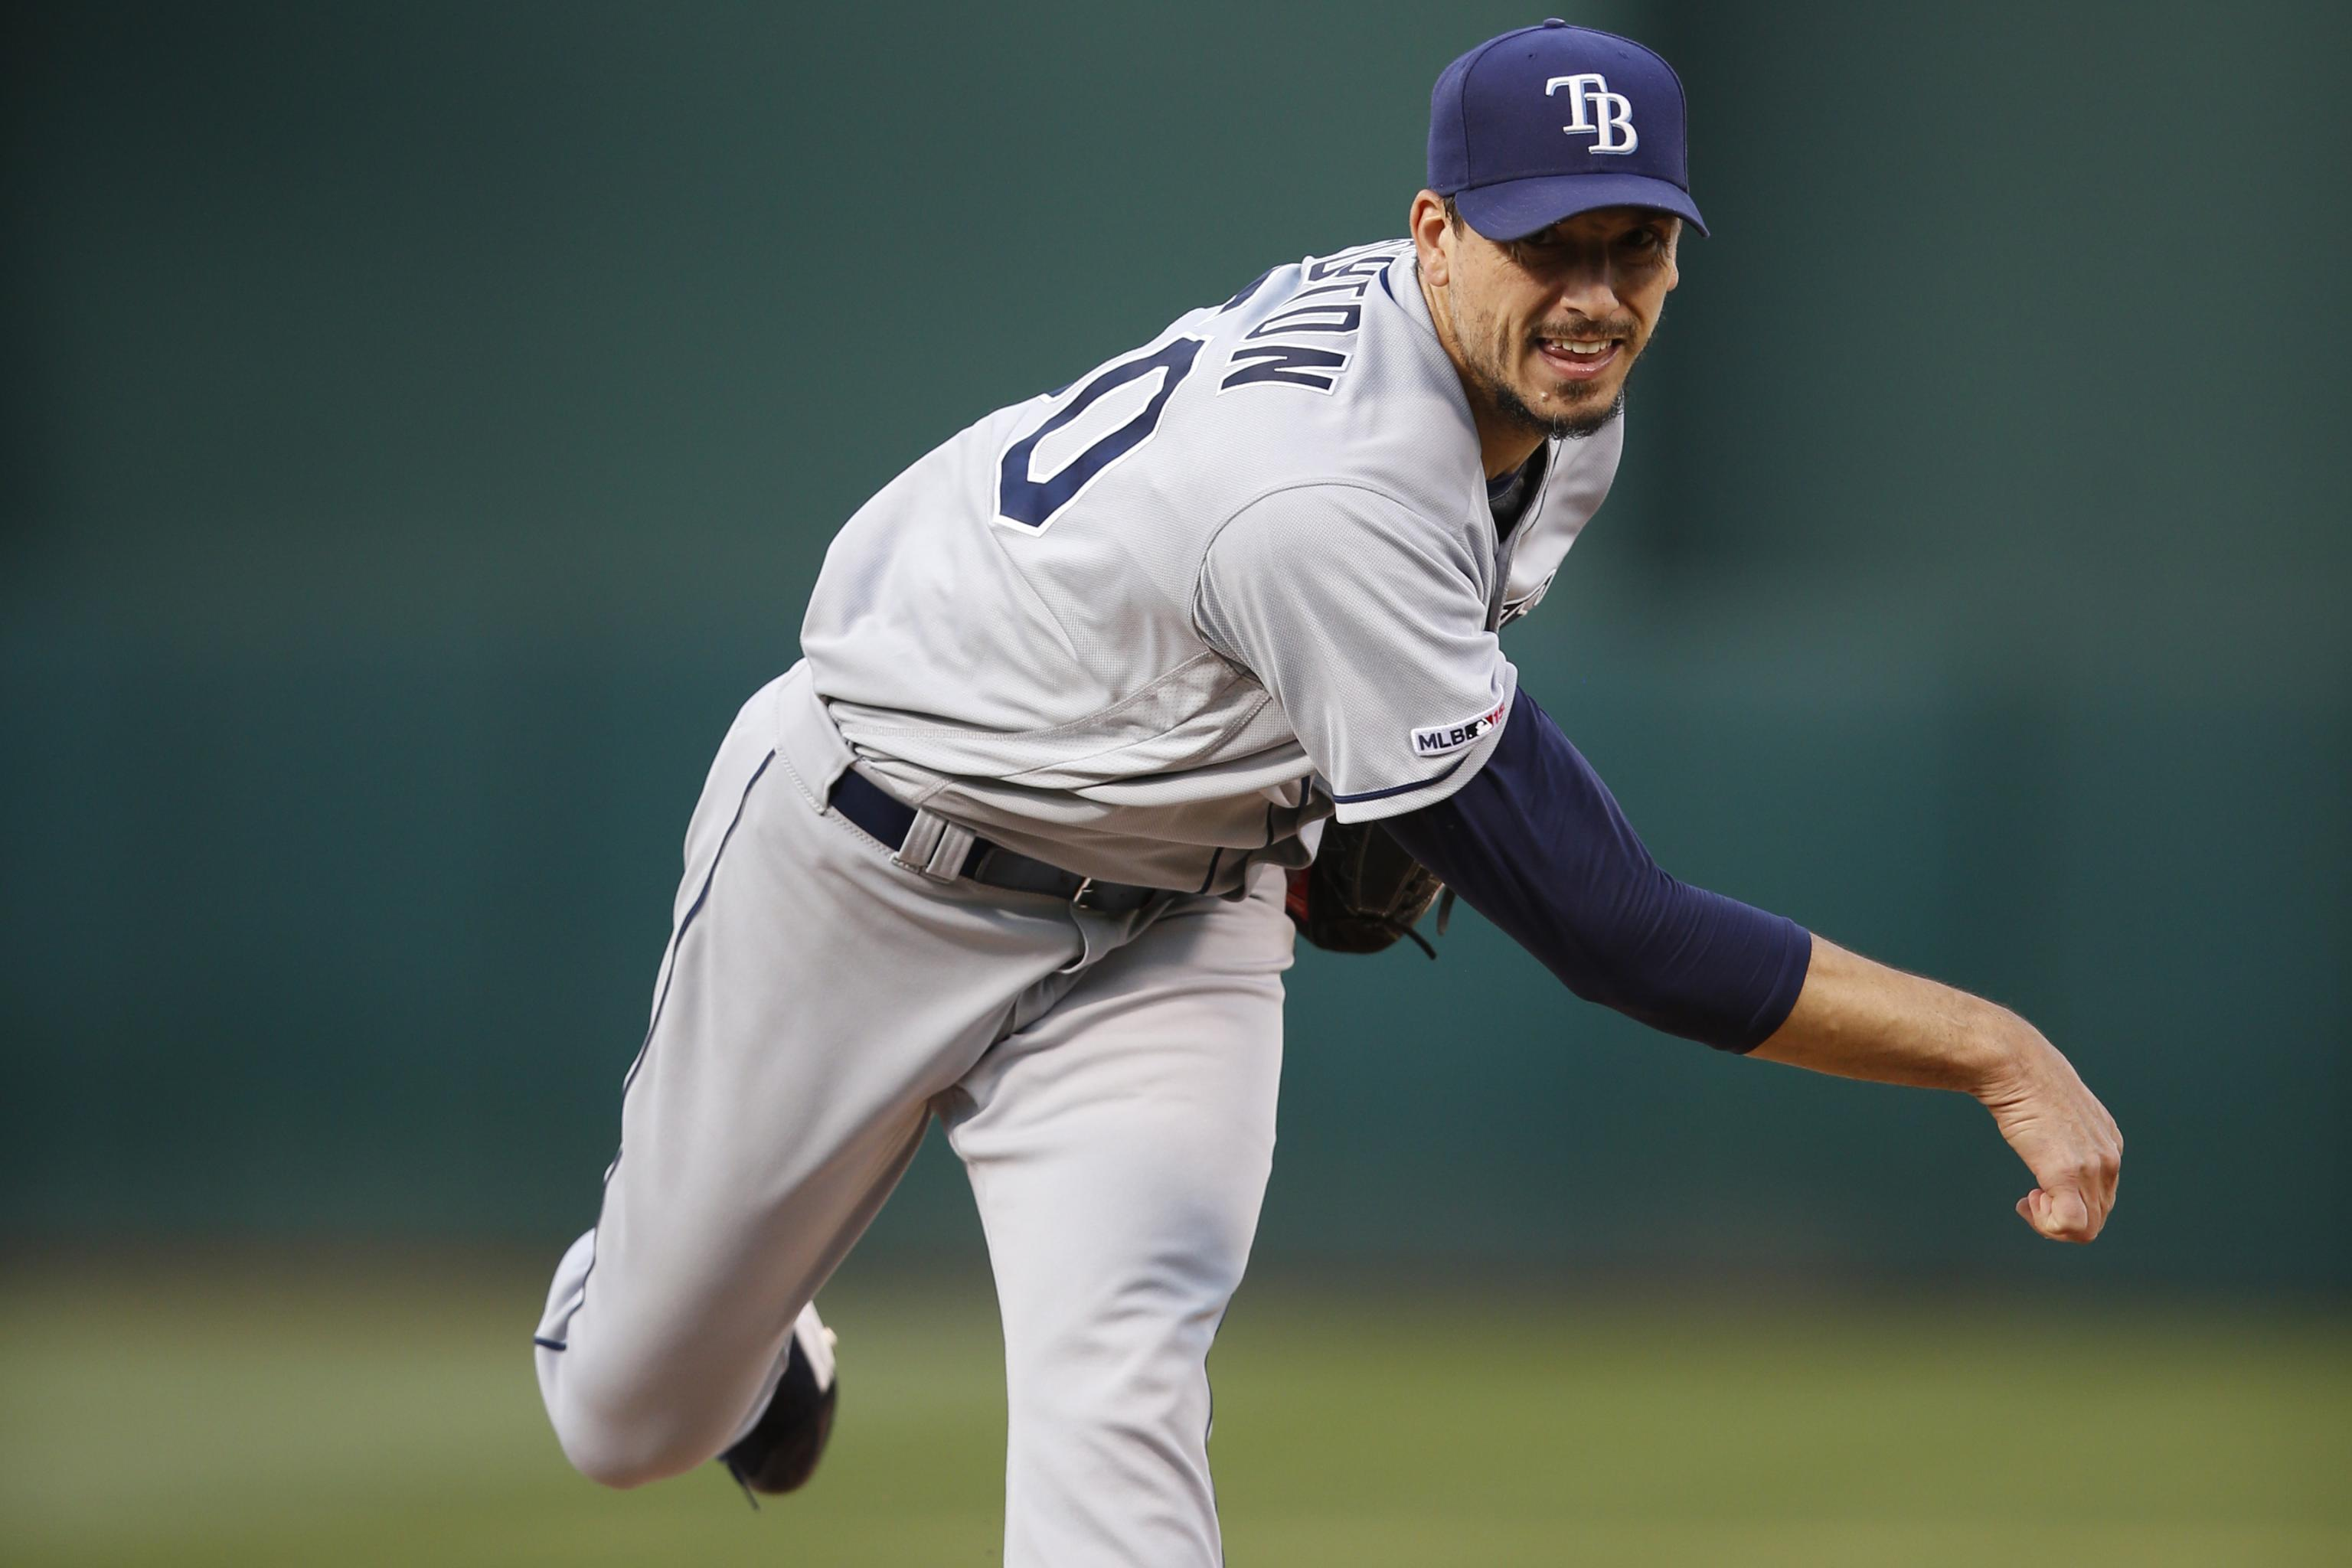 rays trade rumors all star charlie morton won t be made available at deadline bleacher report latest news videos and highlights rays trade rumors all star charlie